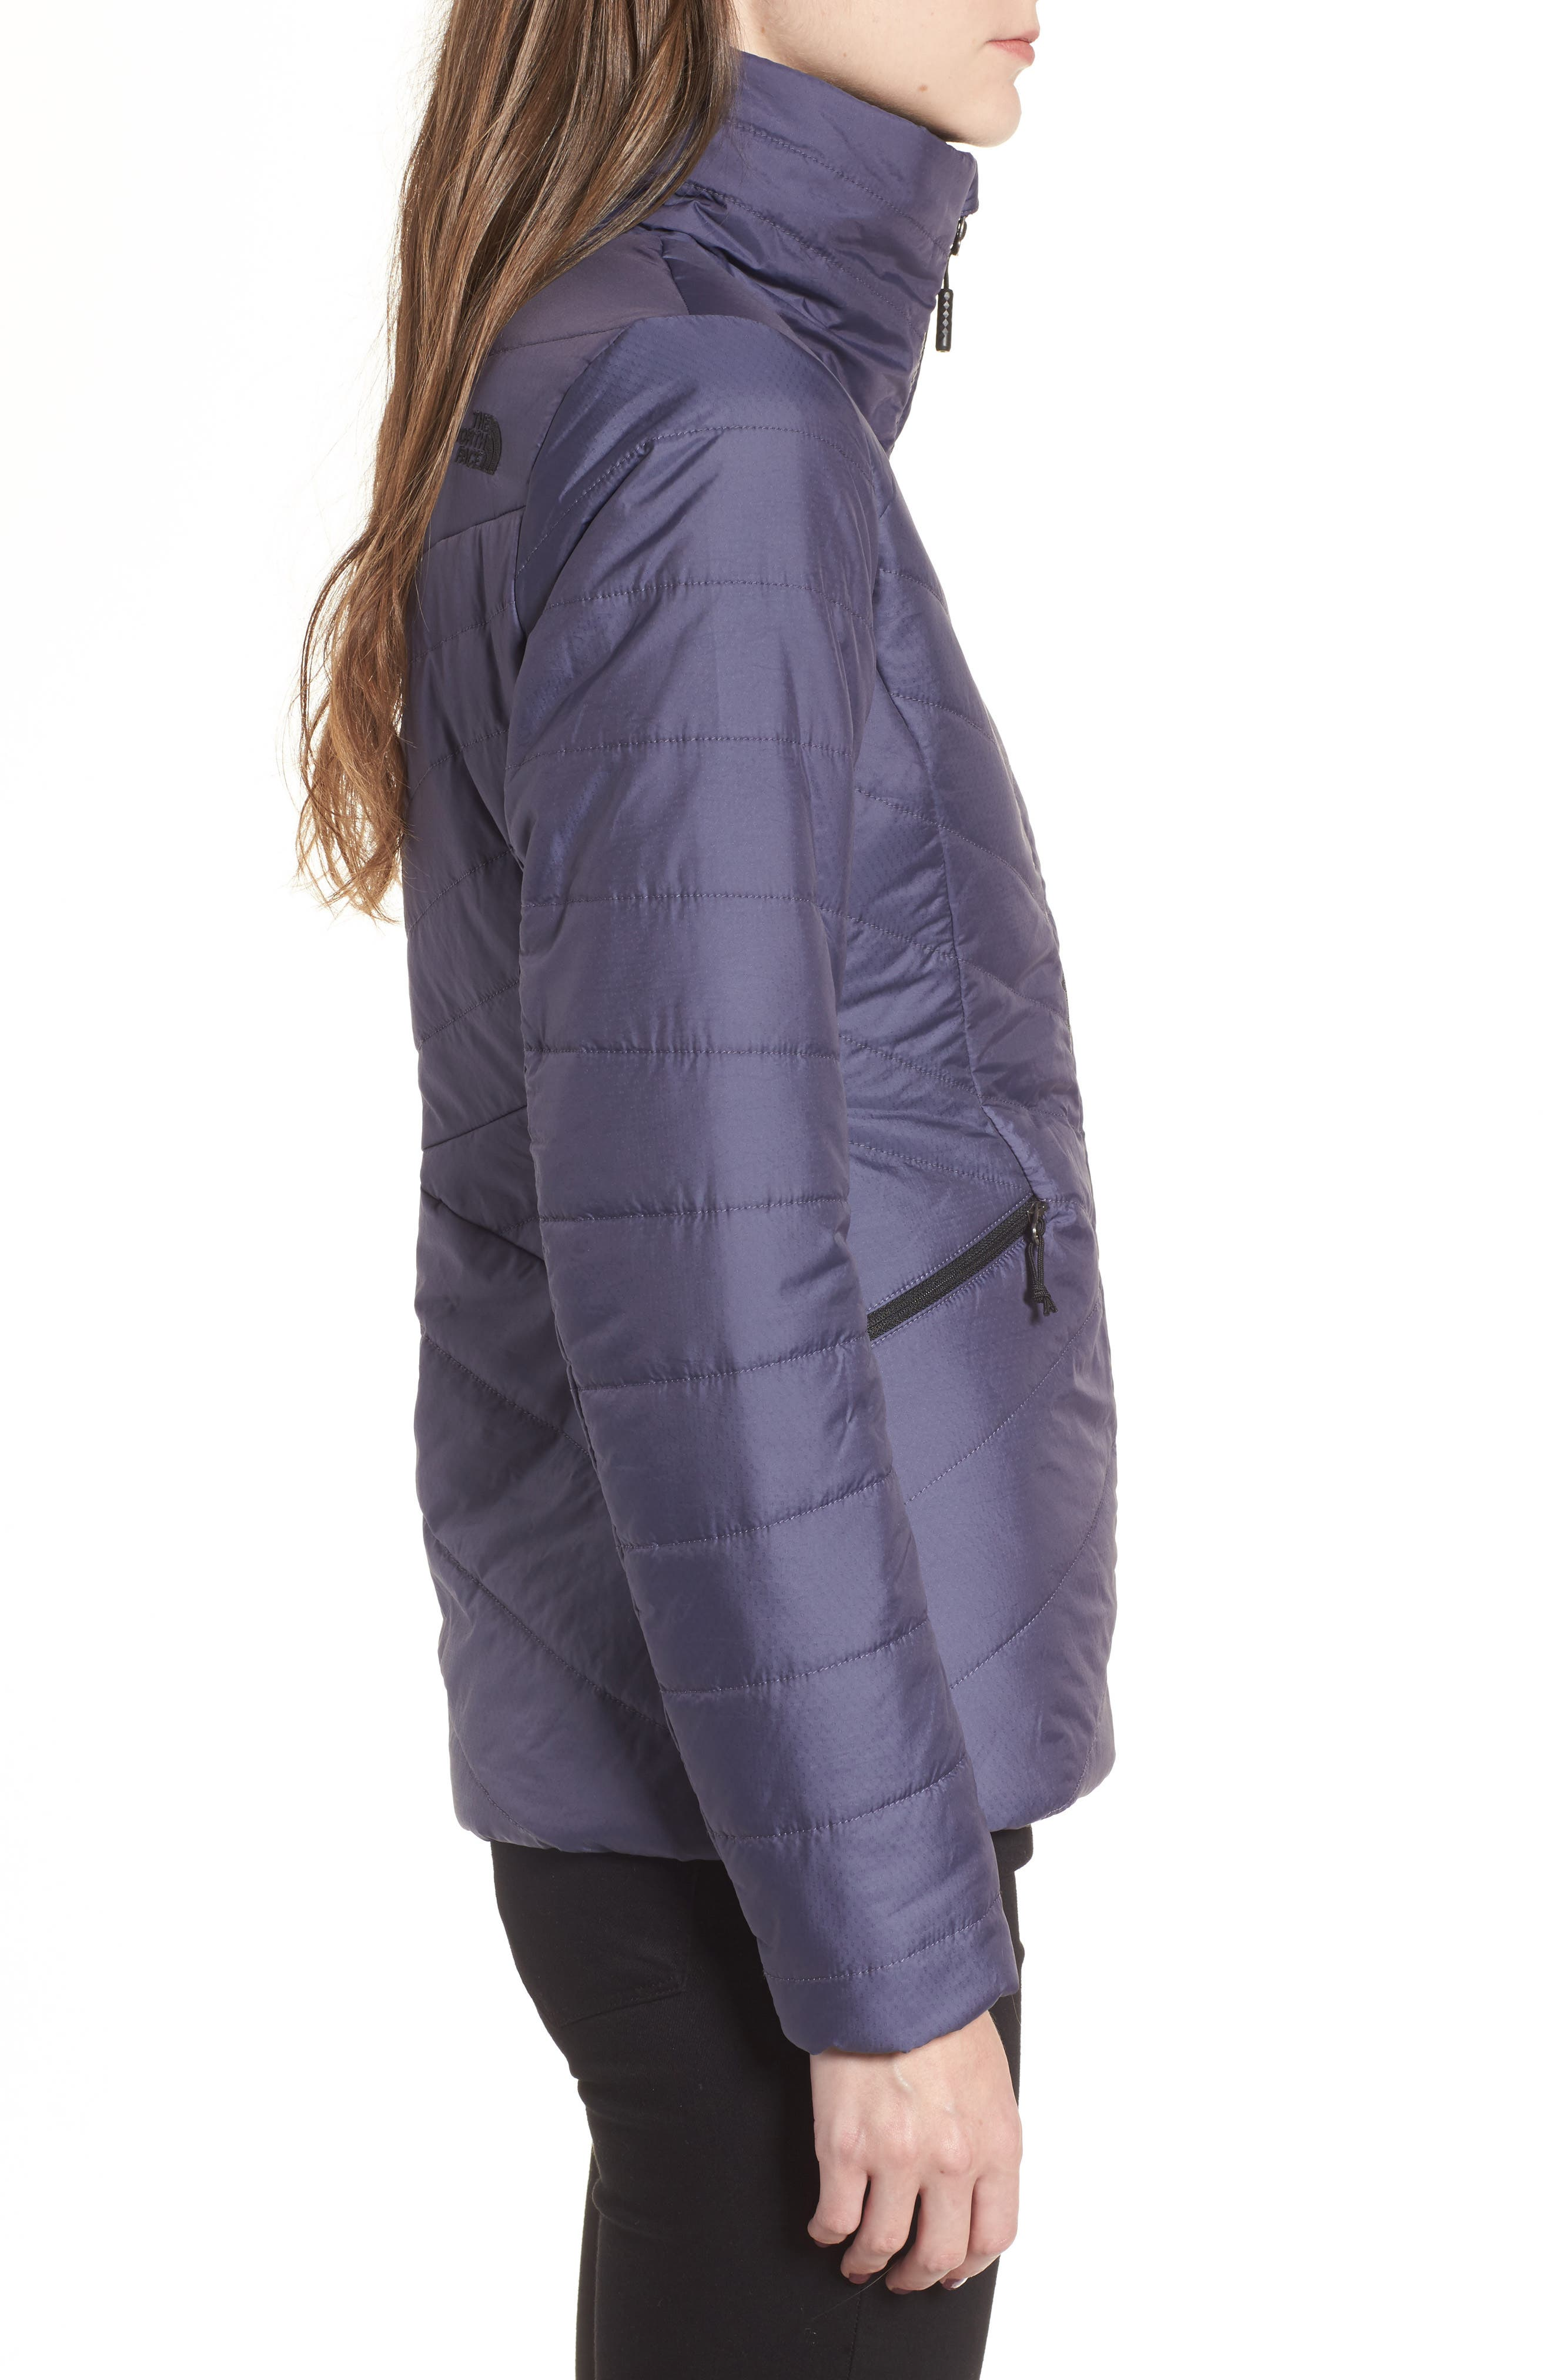 Moonlight Heatseeker Insulated Jacket,                             Alternate thumbnail 3, color,                             Greystone Blue